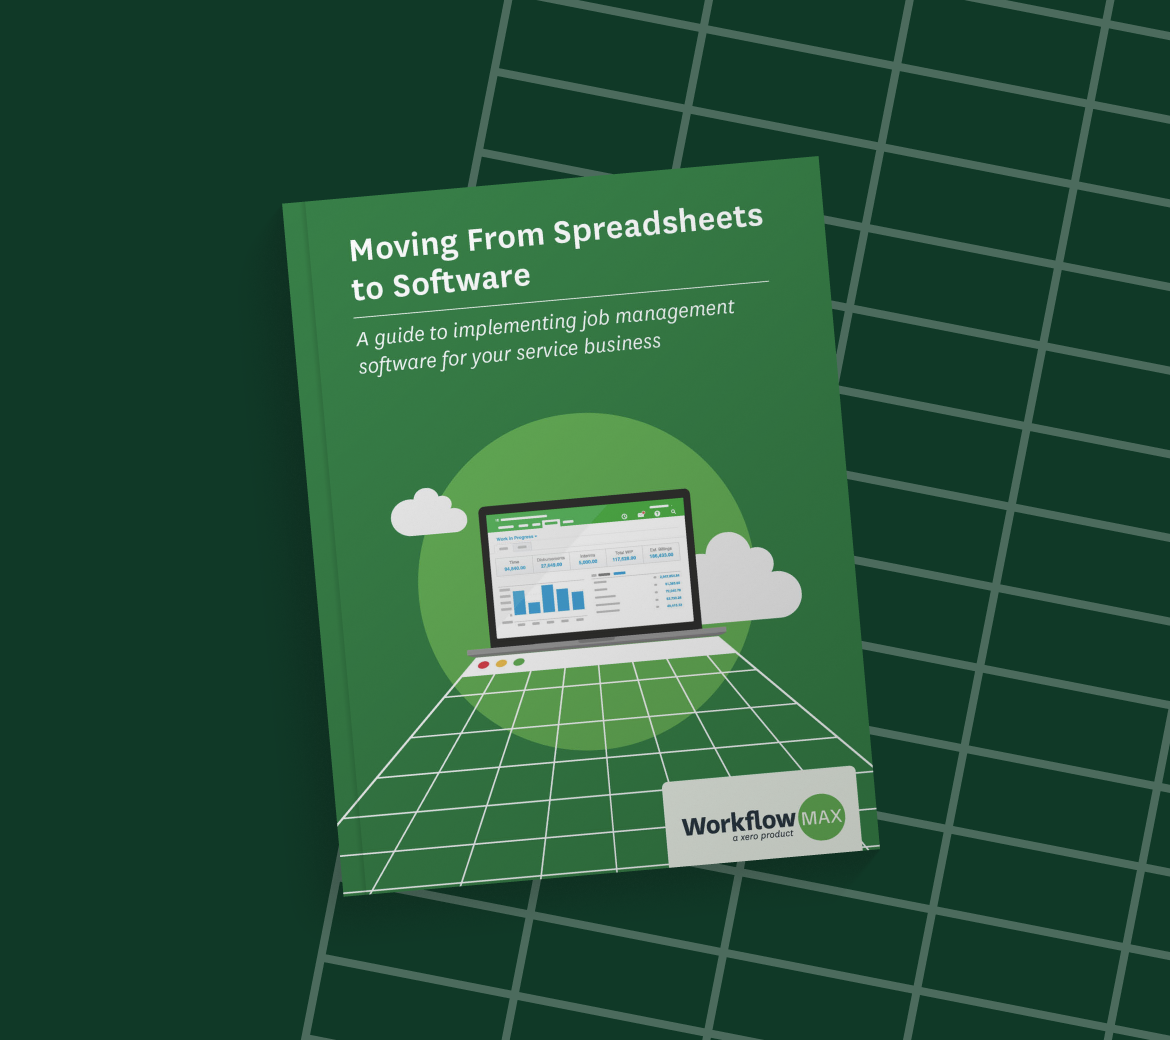 Free download: Moving From Spreadsheets to Software: A guide to implementing job management software